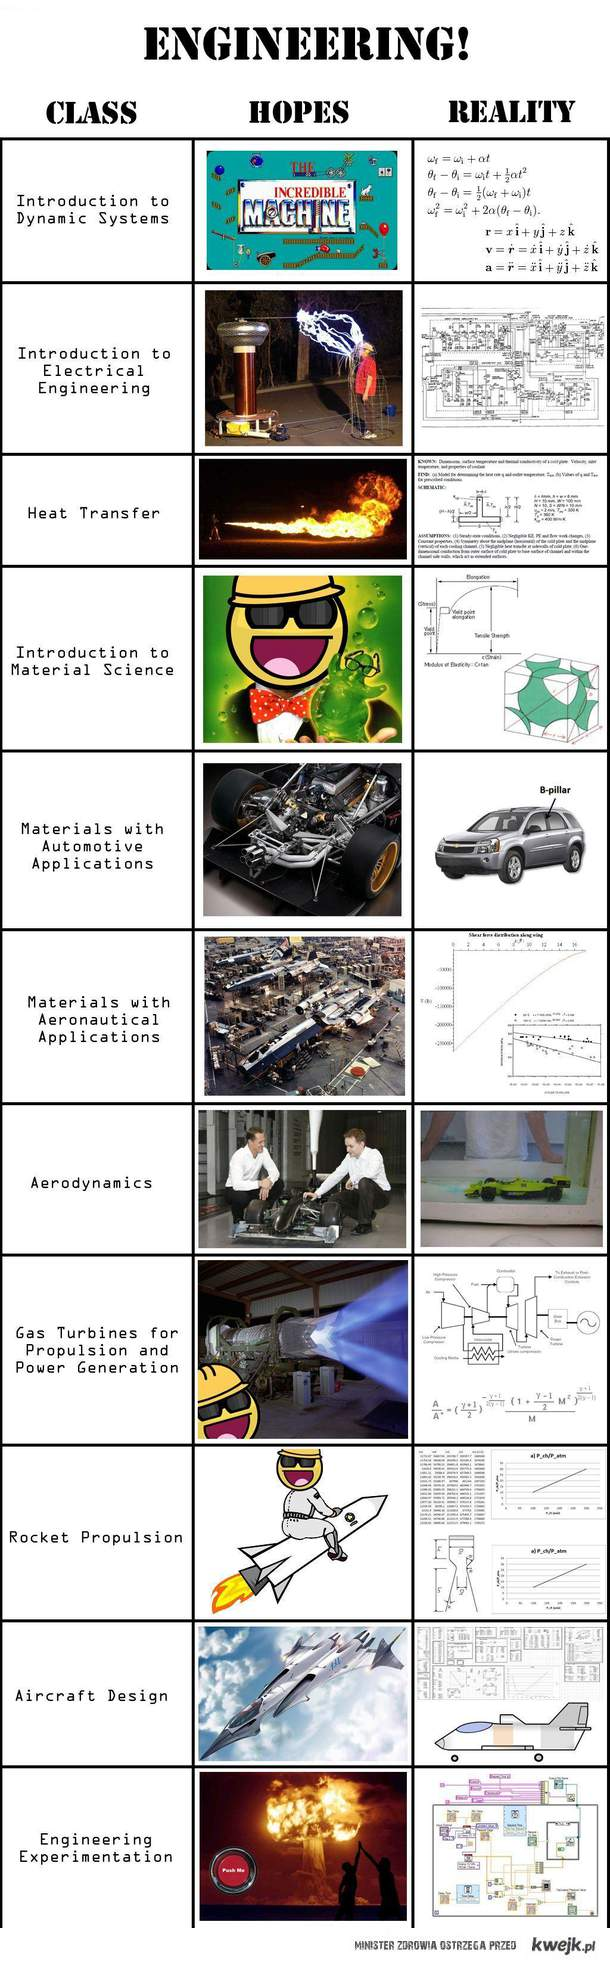 engineering hopes vs reality